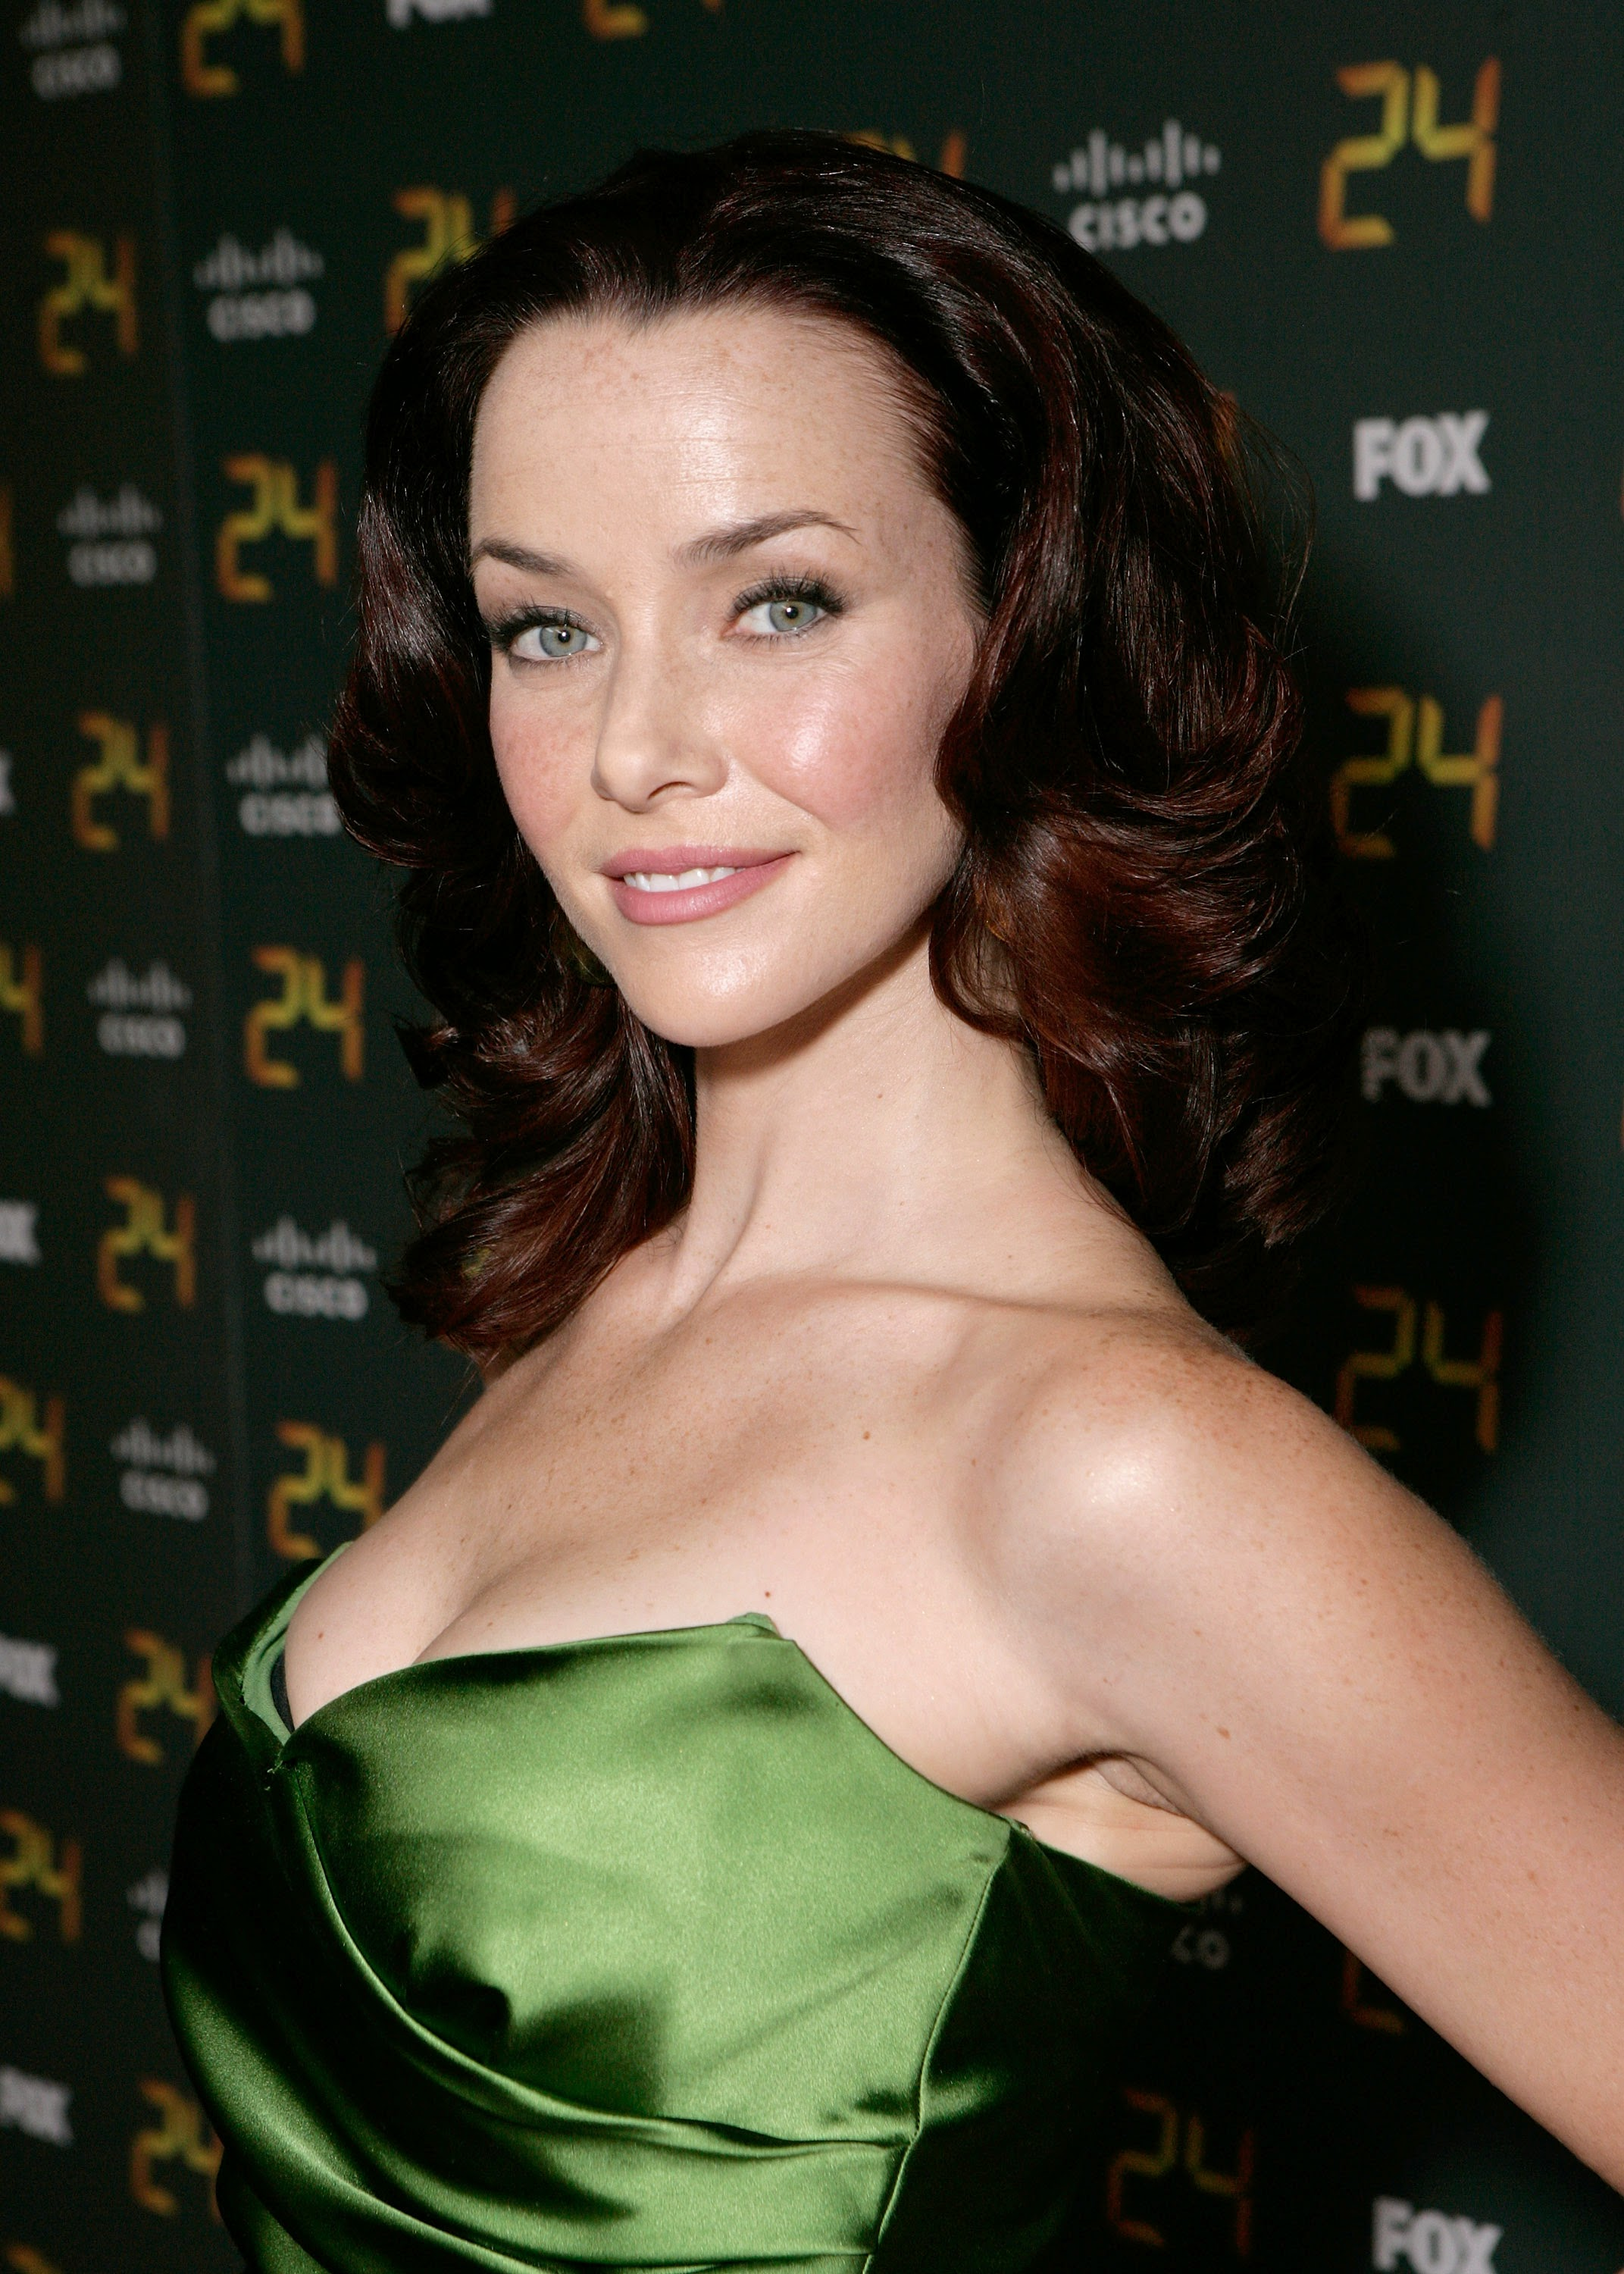 annie wersching - photo #20